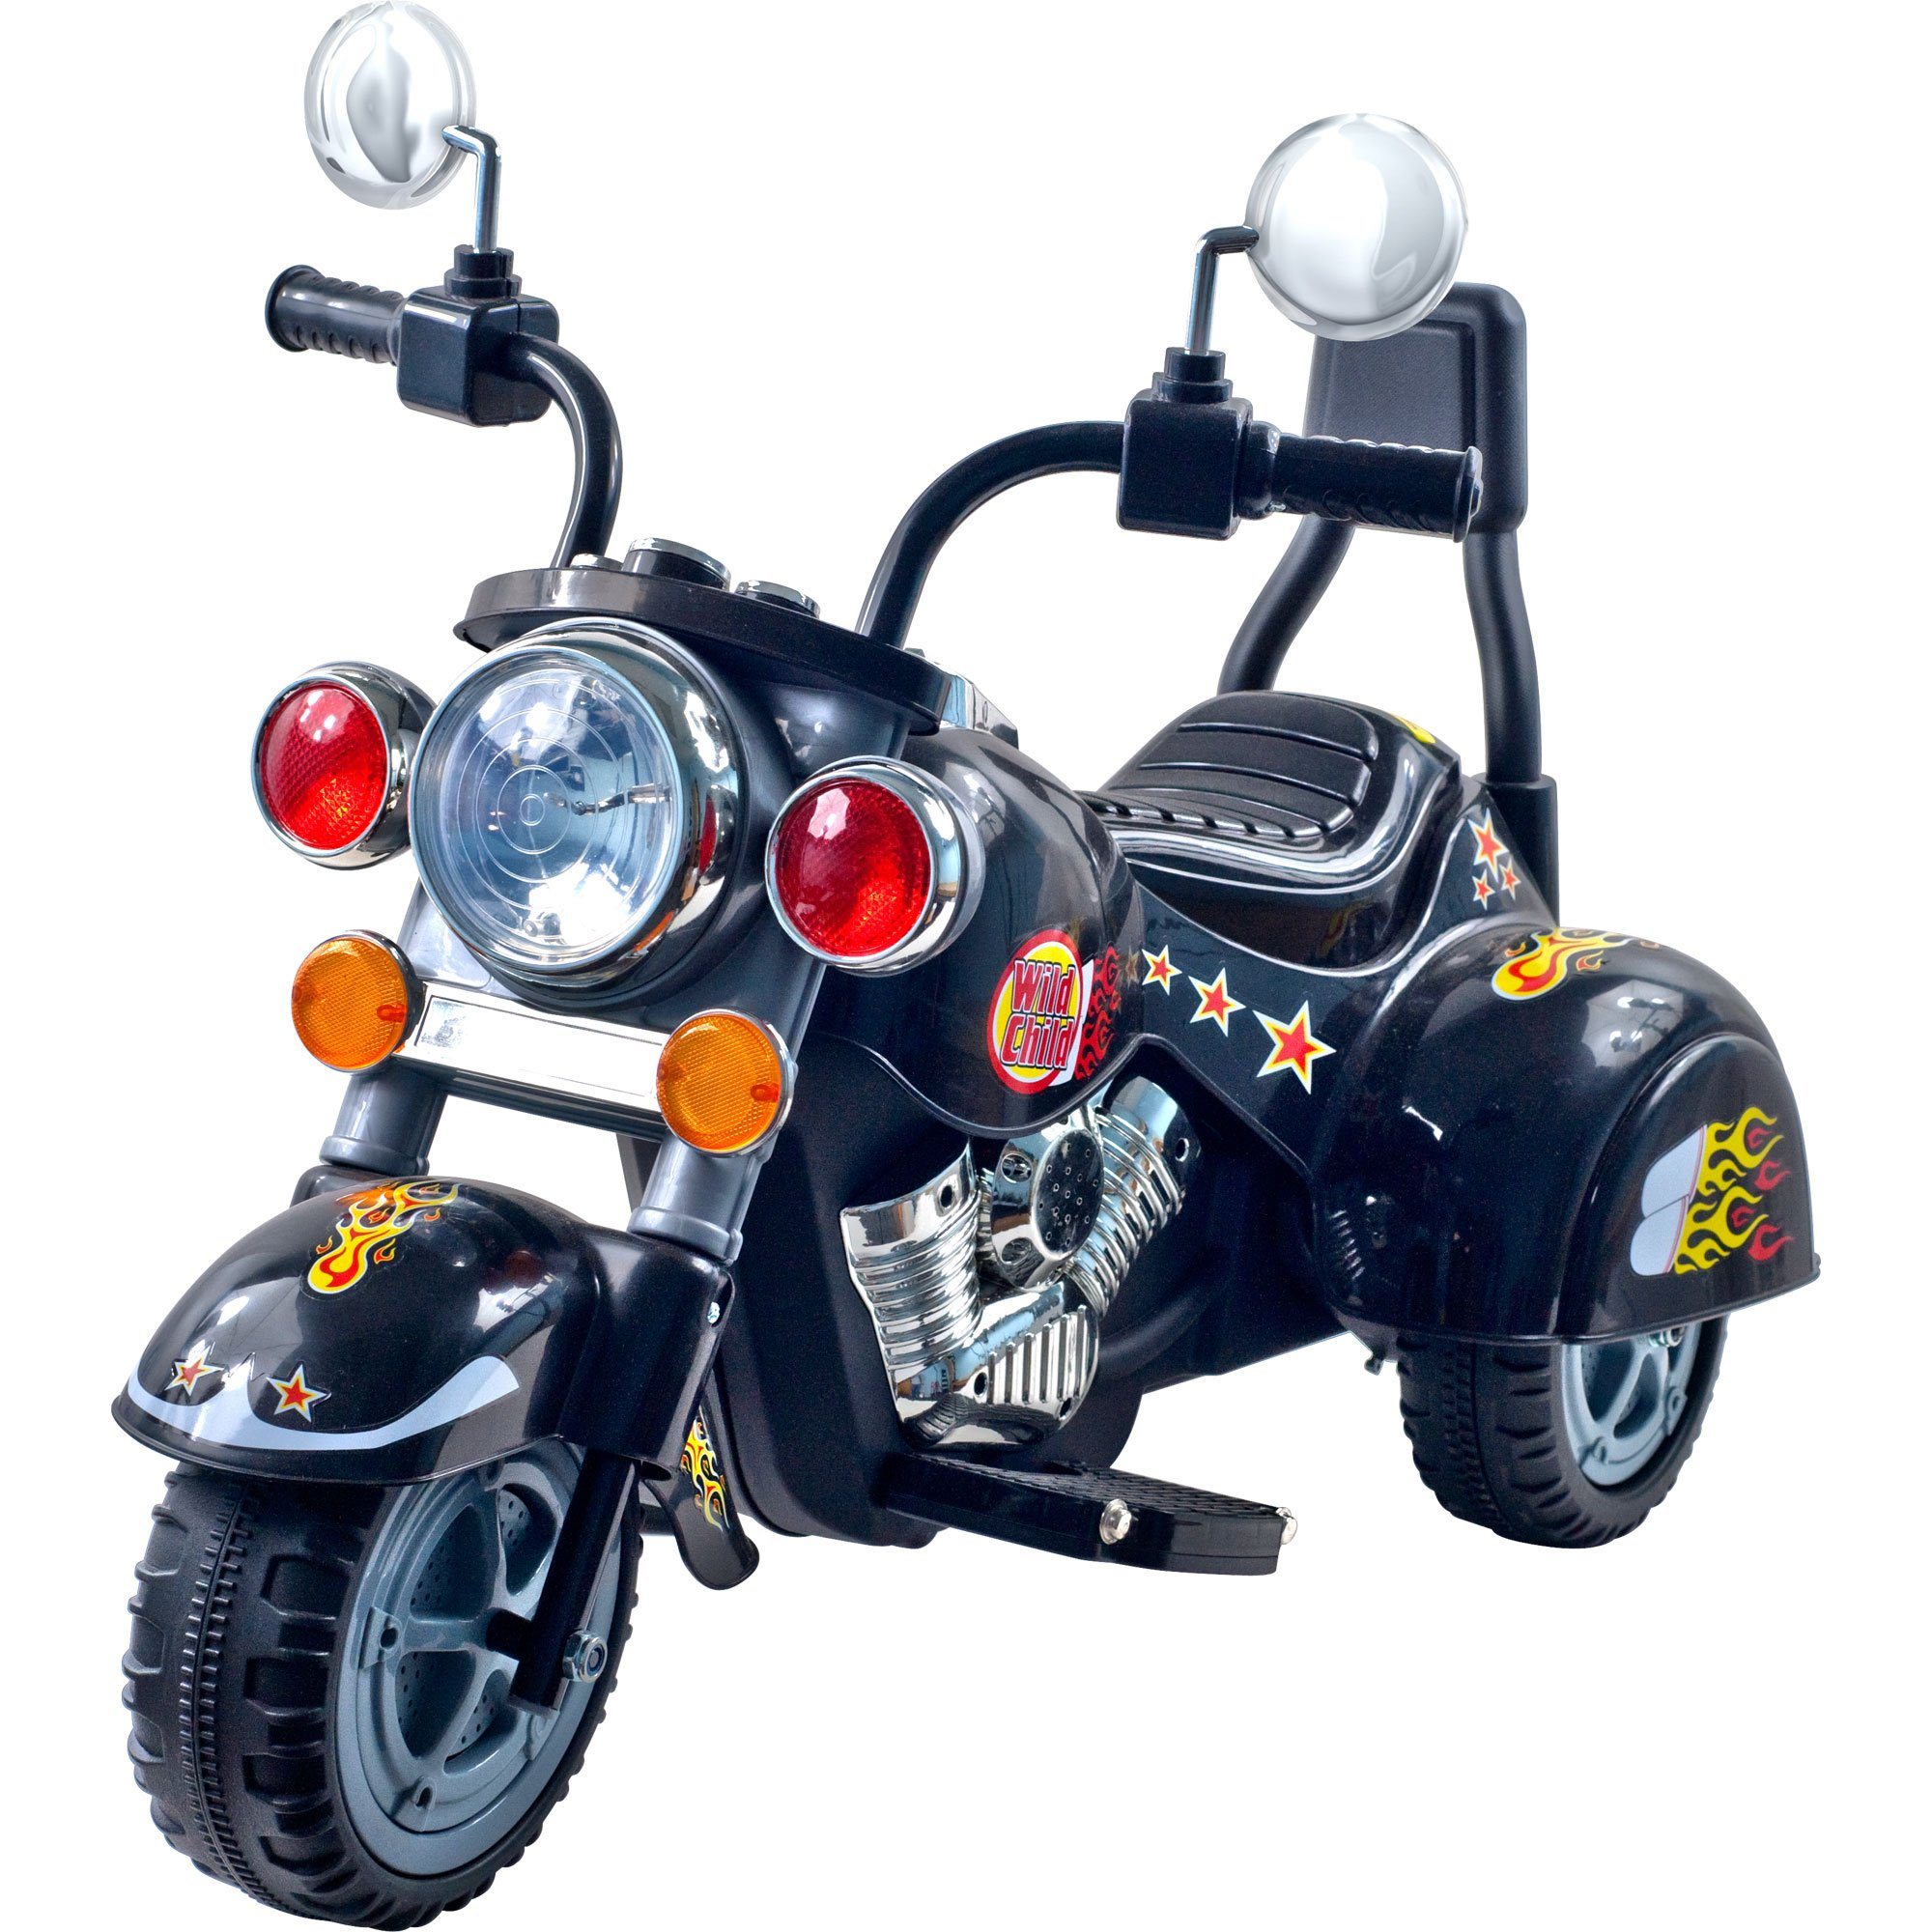 3 Wheel Chopper Trike Motorcycle for Kids, Battery Powered Ride On Toy by Lil' Rider  – Ride on Toys for Boys and Girls, Toddler and Up - Black by Lil' Rider